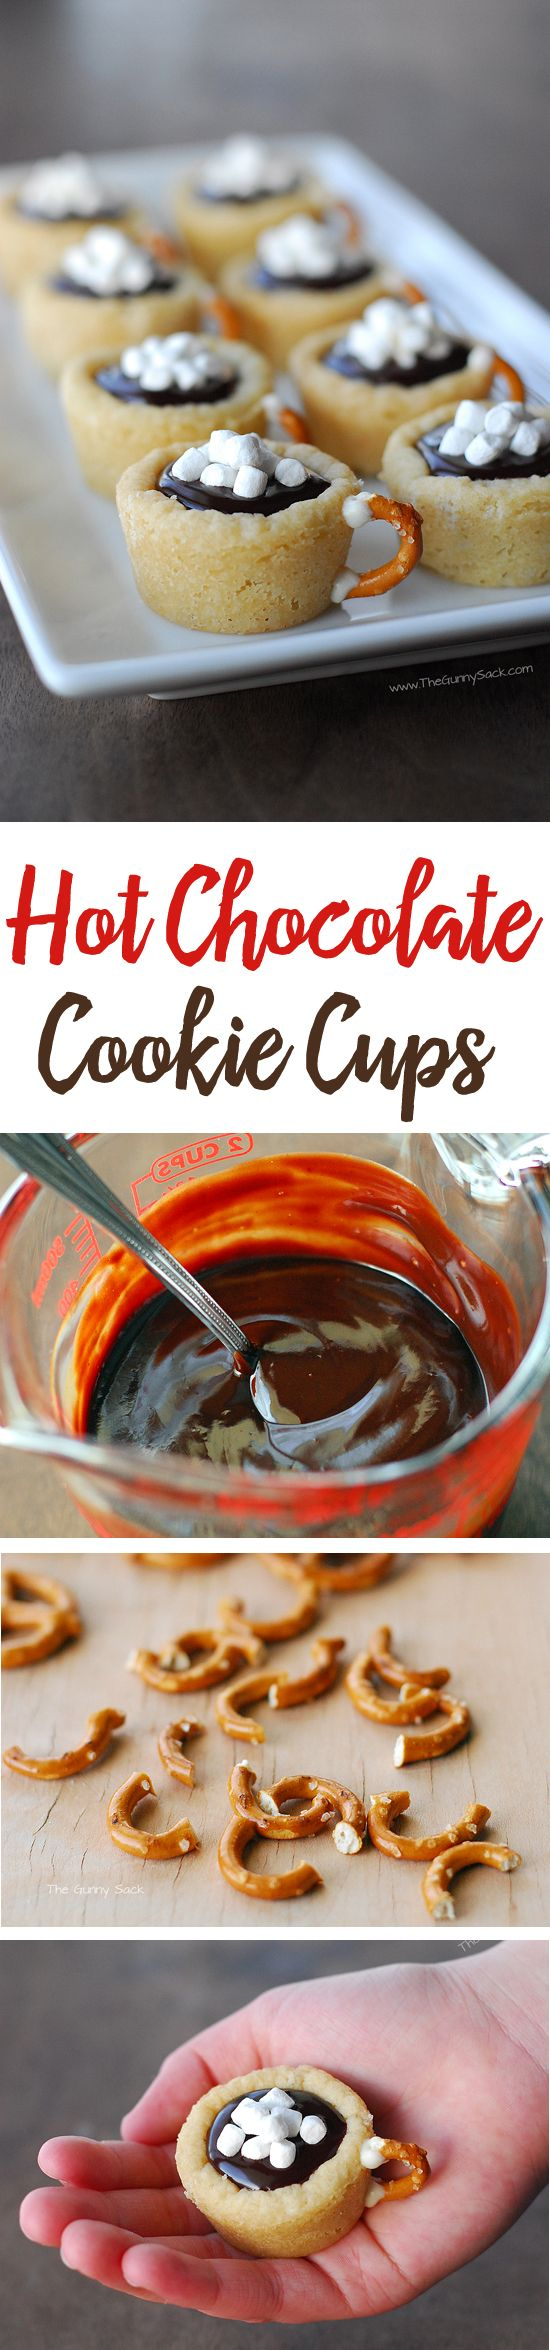 This+easy+cookie+recipe+for+Hot+Chocolate+Cookie+Cups+is+made+with+sugar+cookies.+They're+filled+with+chocolate+ganache+and+have+a+pretzel+handle!